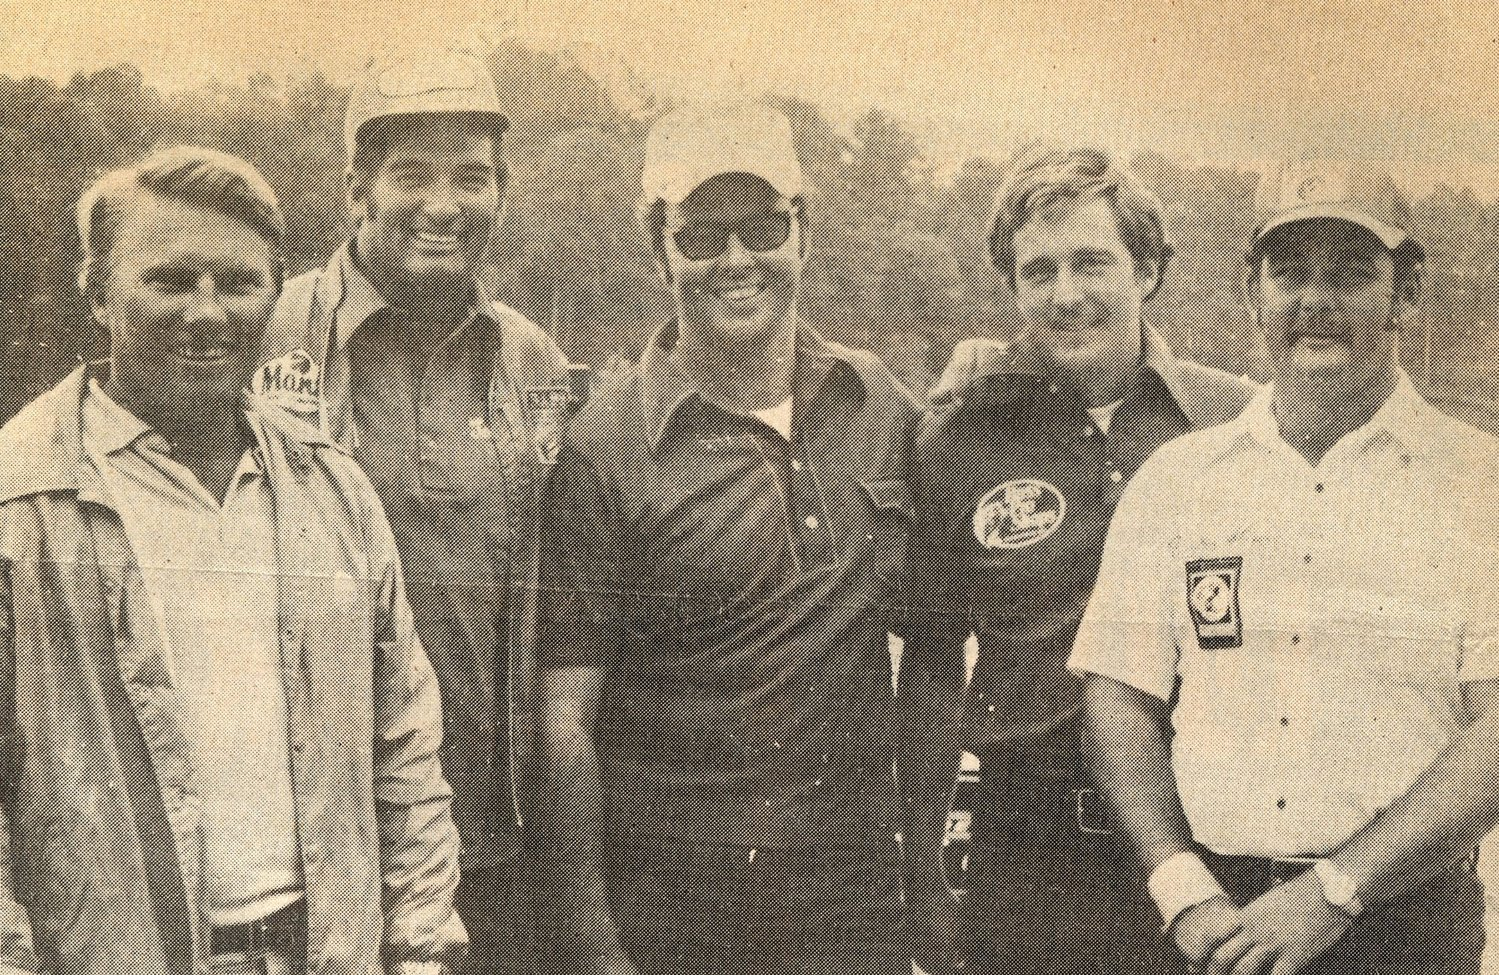 Left to right: Legendary anglers Roland Martin, Tom Mann, Bill Dance, Johnny Morris and Ricky Green.